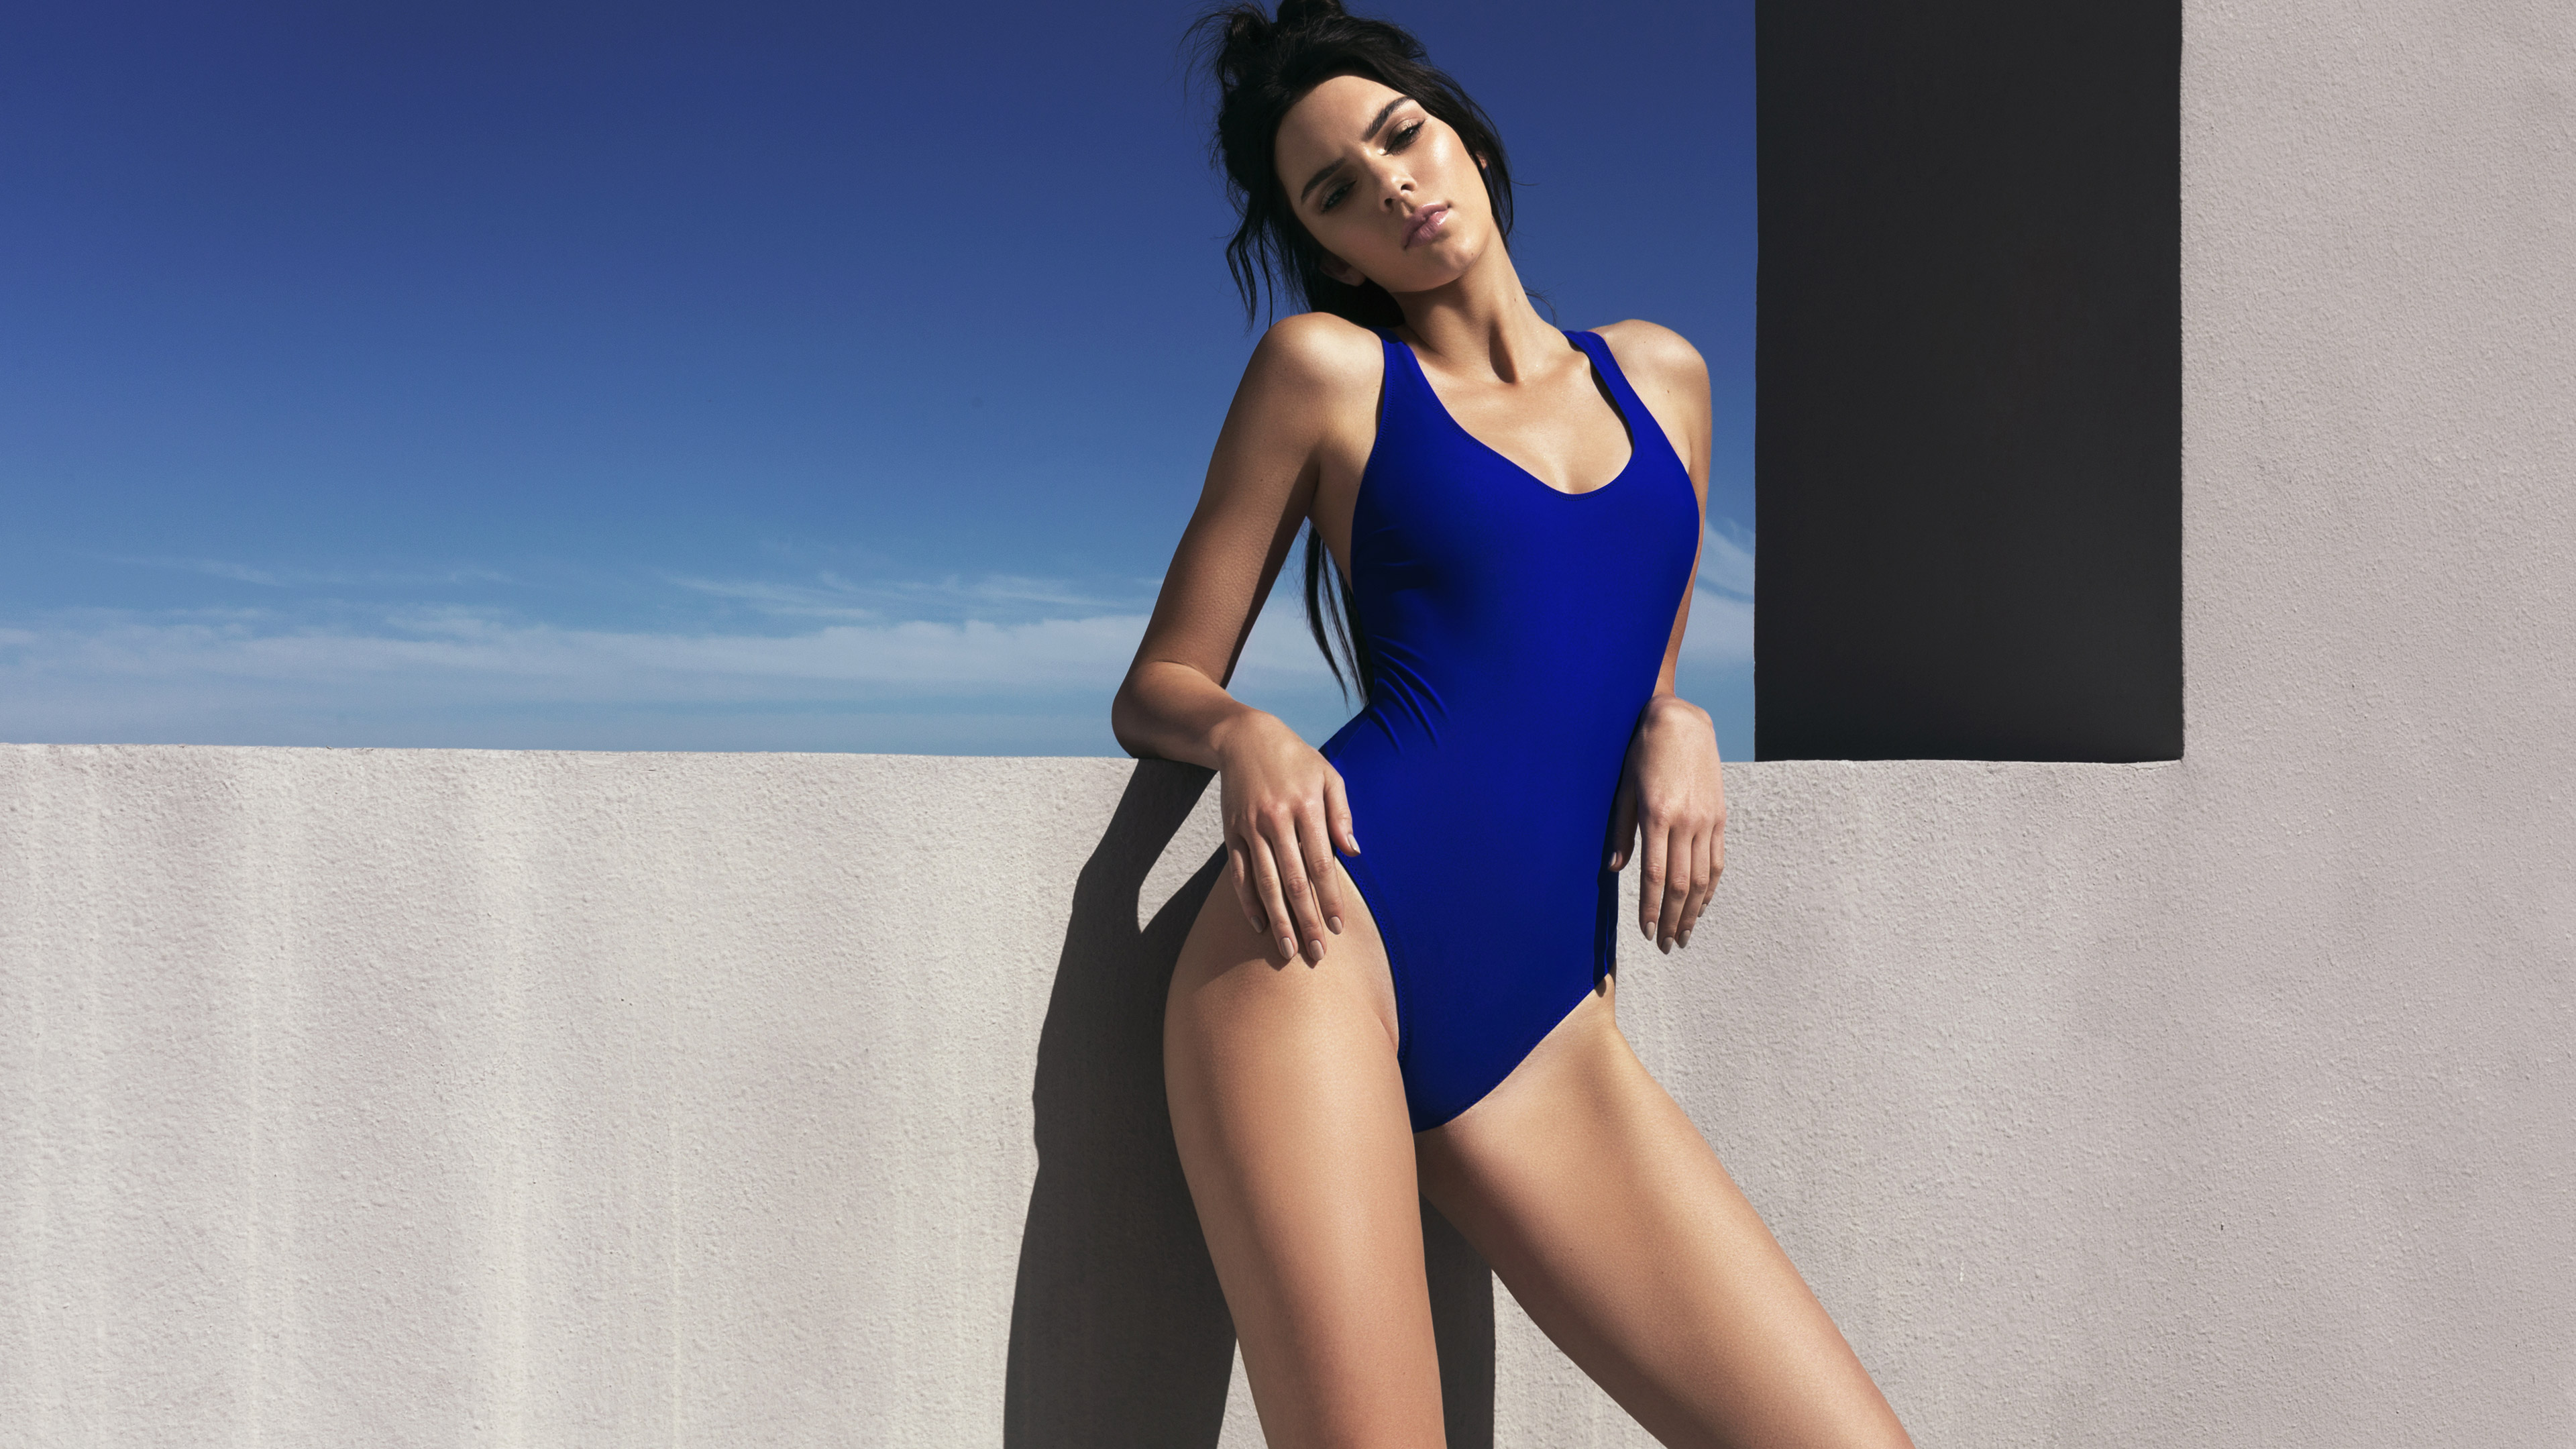 2560x1440 Kendall Jenner SwimSuit 1440P Resolution Wallpaper HD 3840x2160